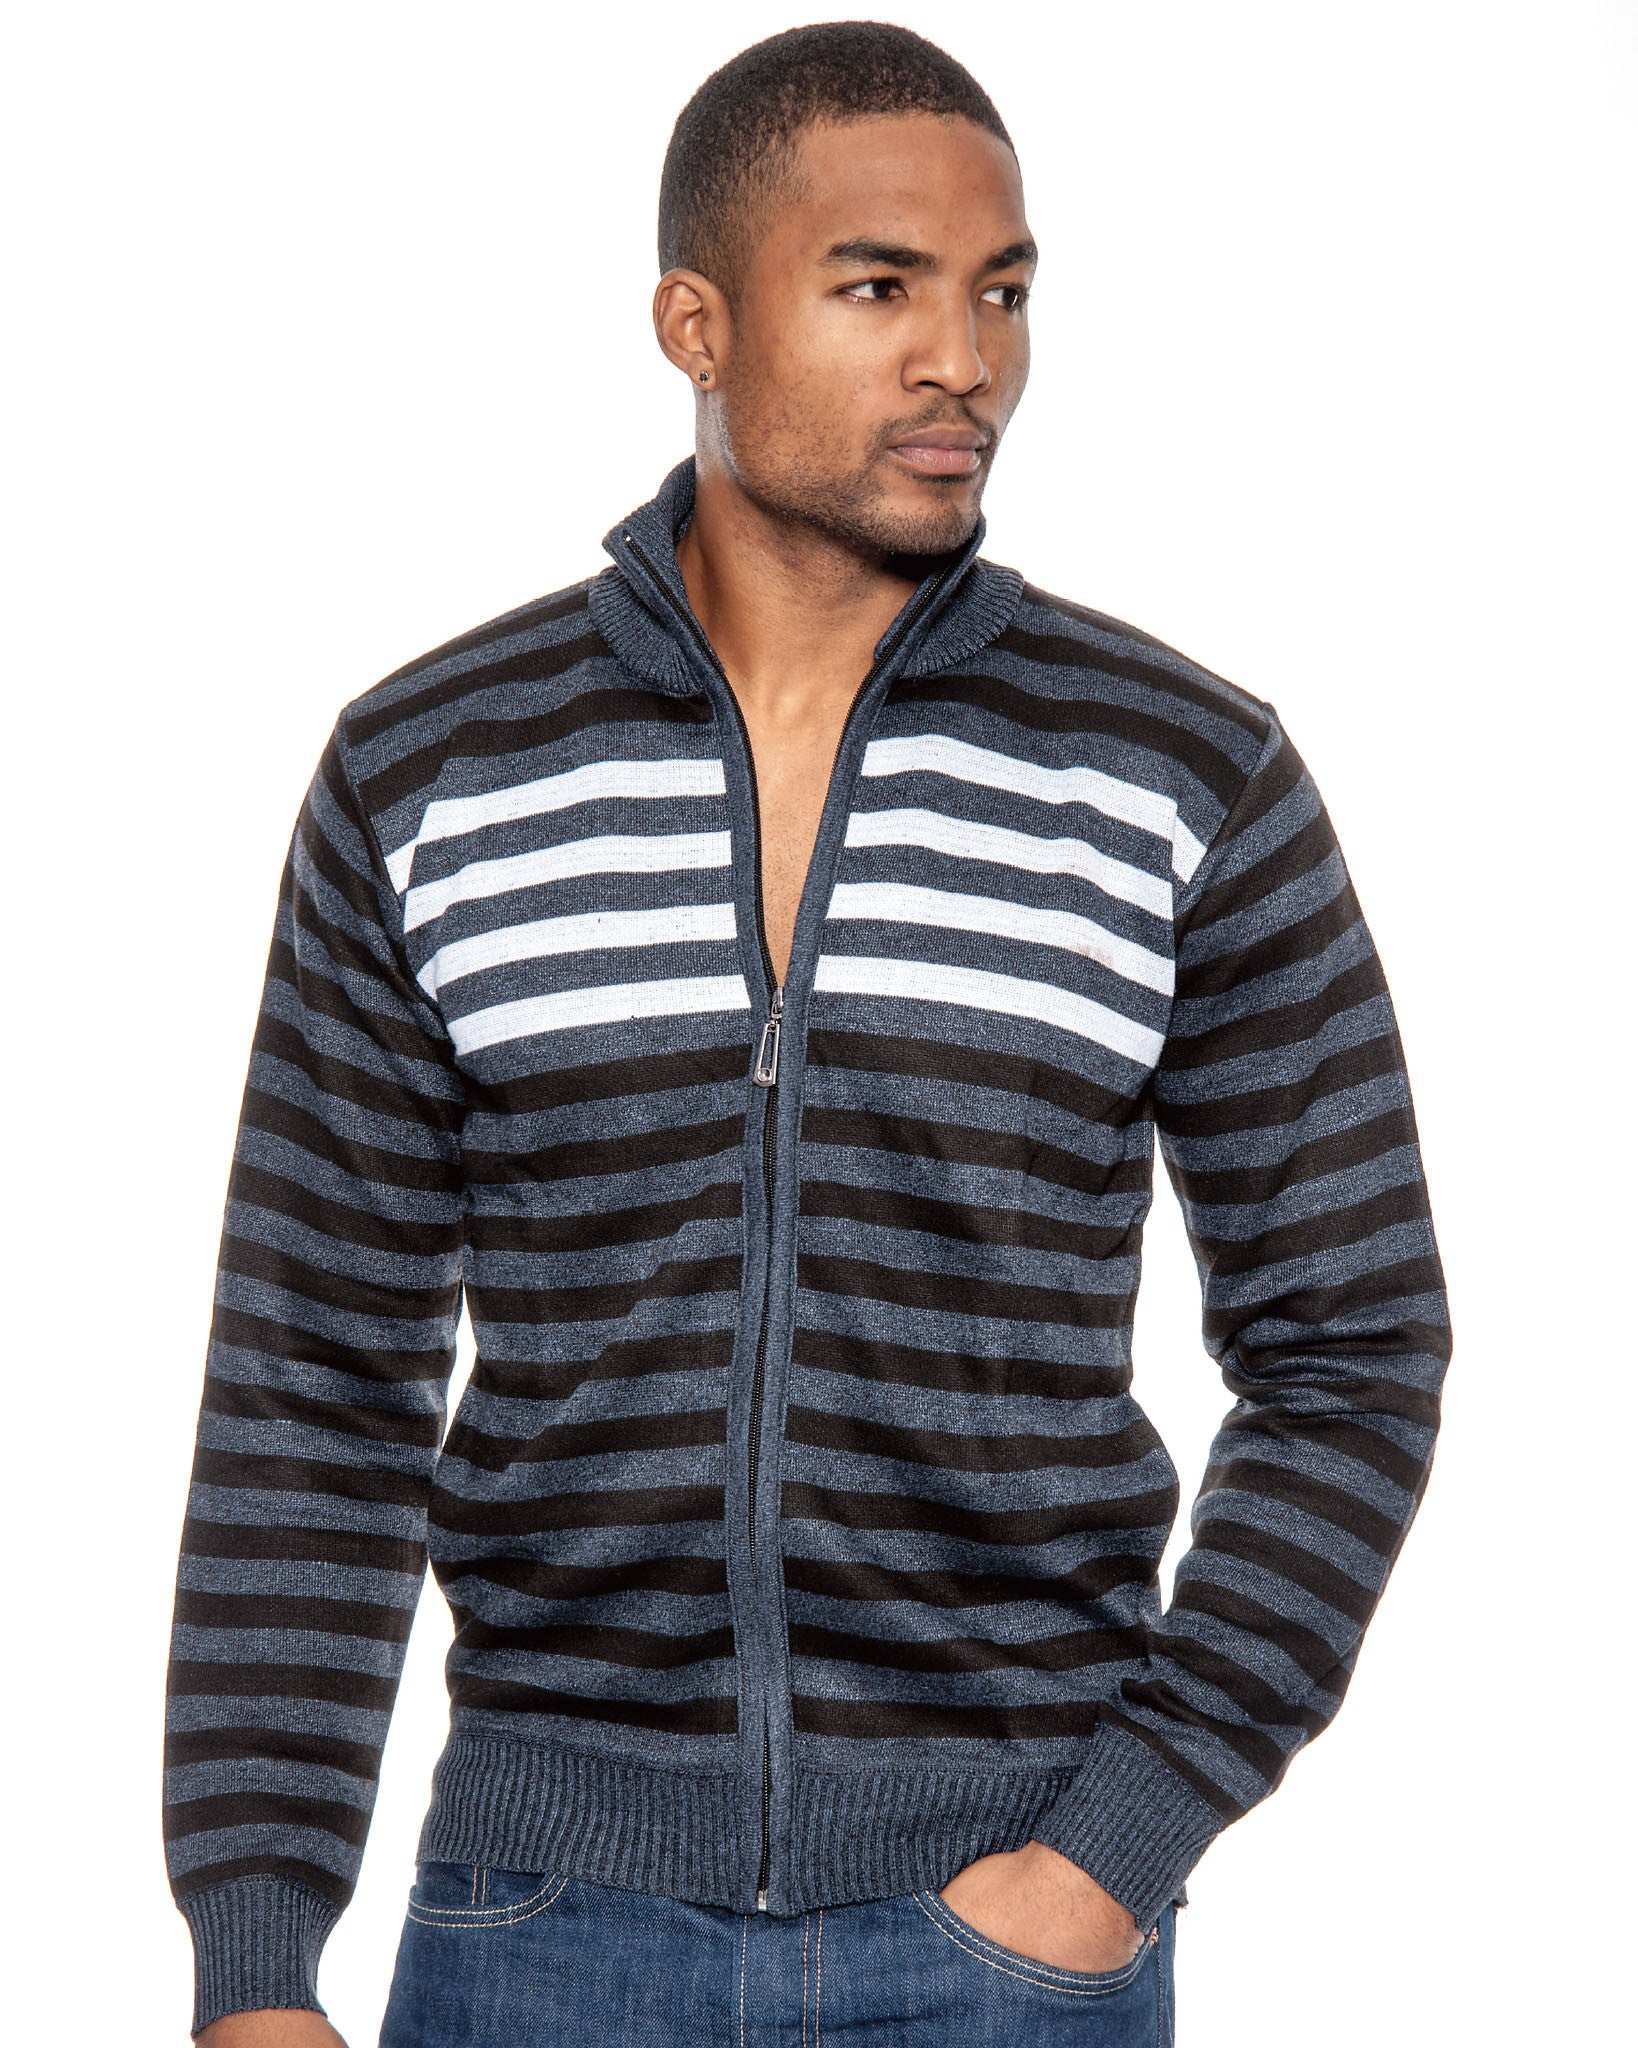 True Rock Mens Striped Full Zipper Knit Sweater Jacket | Navy Blue Black White